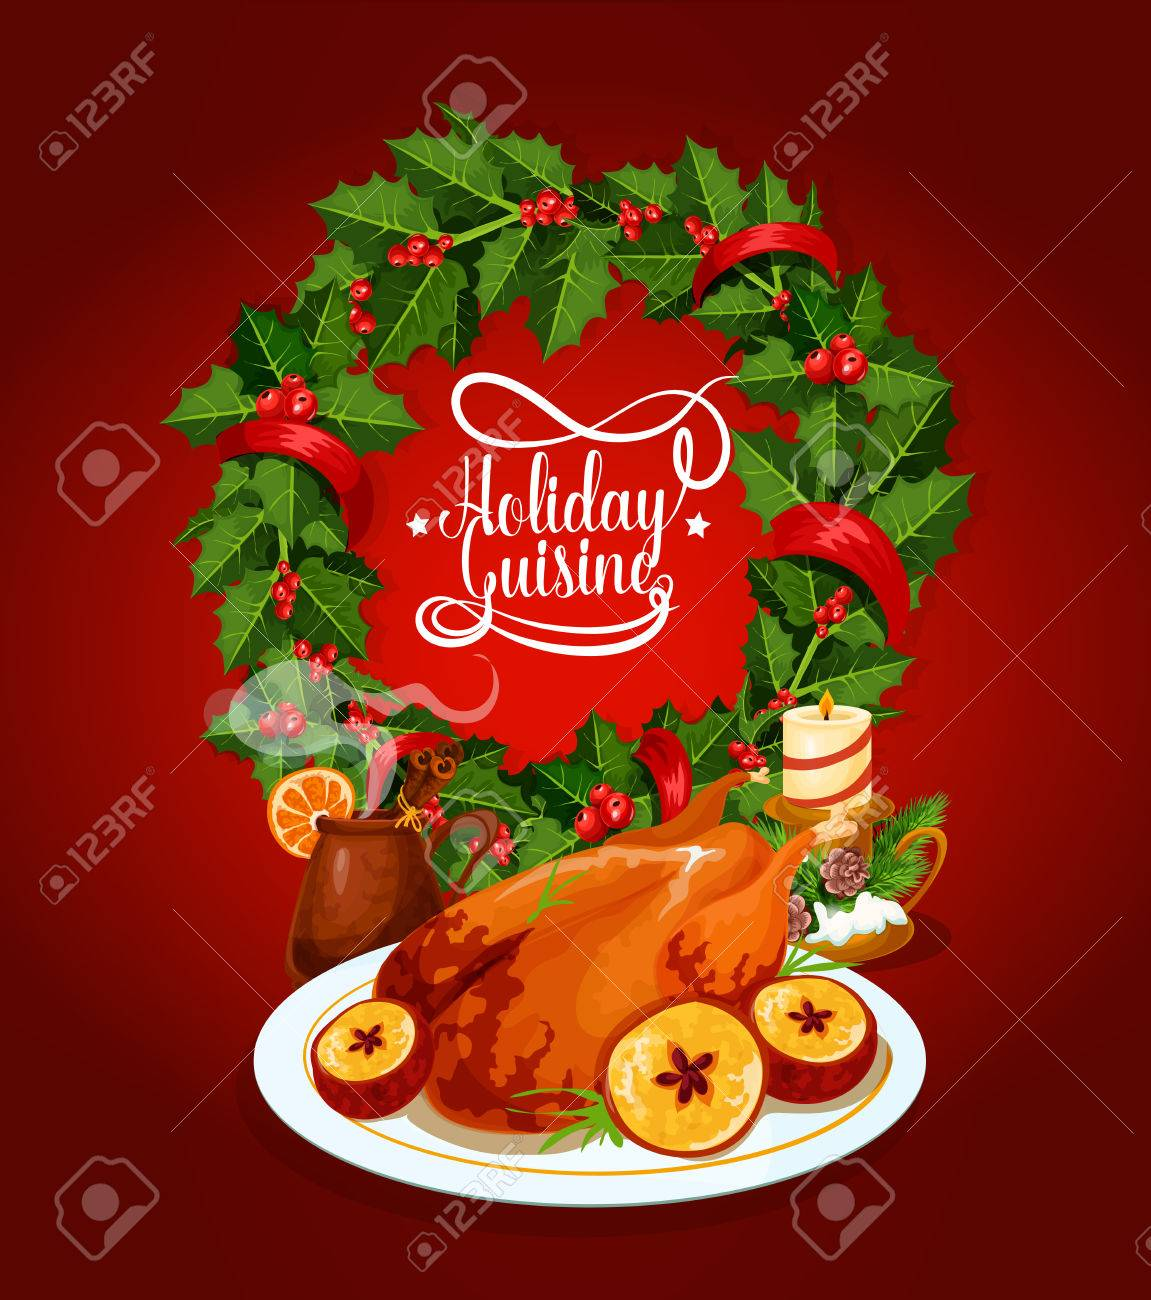 Poster Cuisine Christmas Turkey Festive Cuisine Poster Baked Turkey With Apple